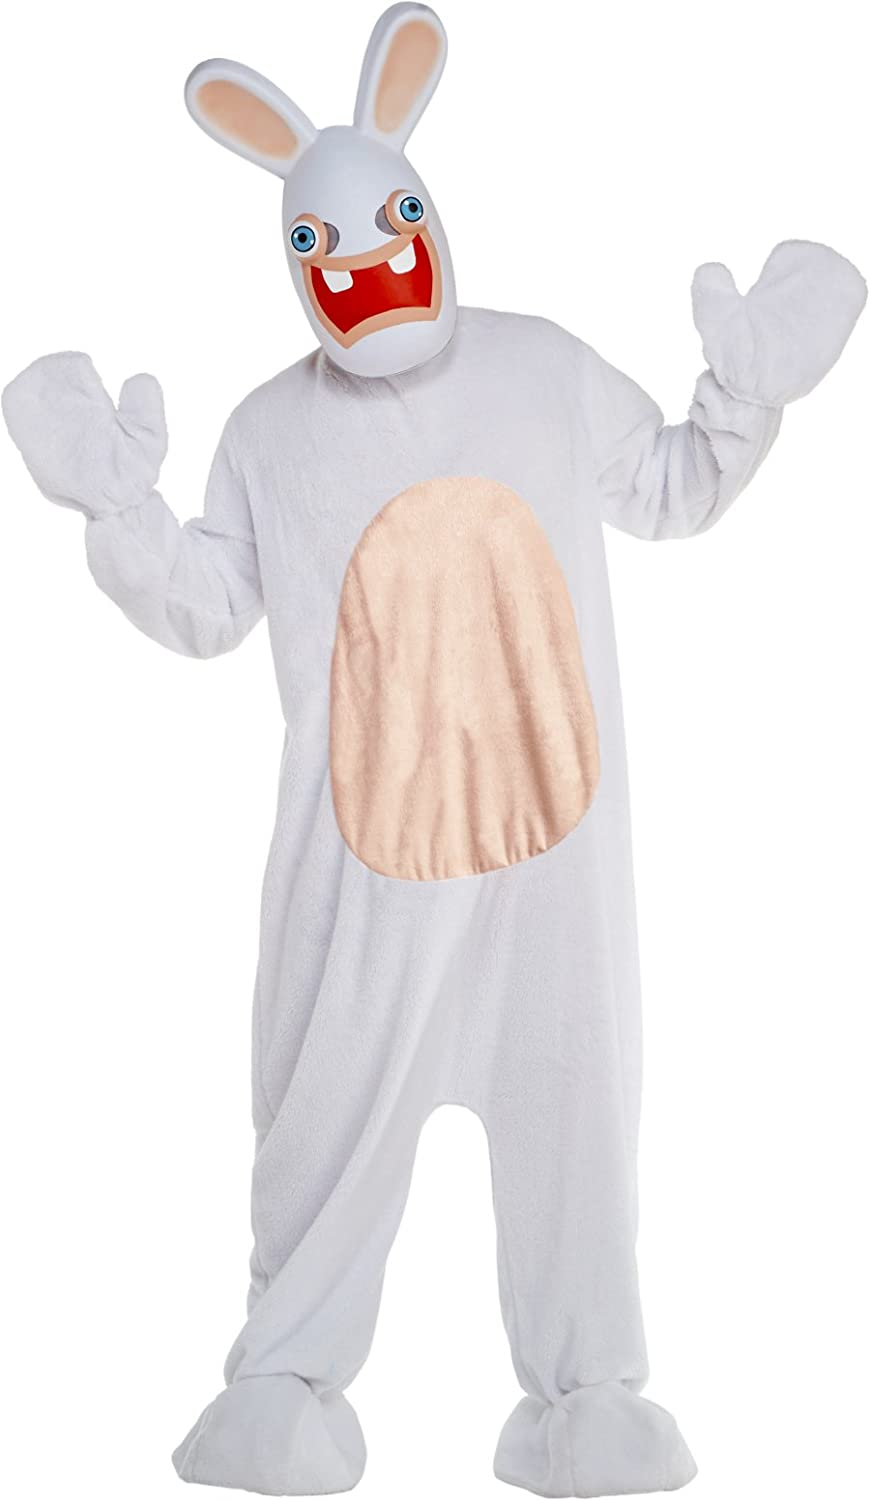 Deluxe Rabbids Adult Fancy dress costume X-Large